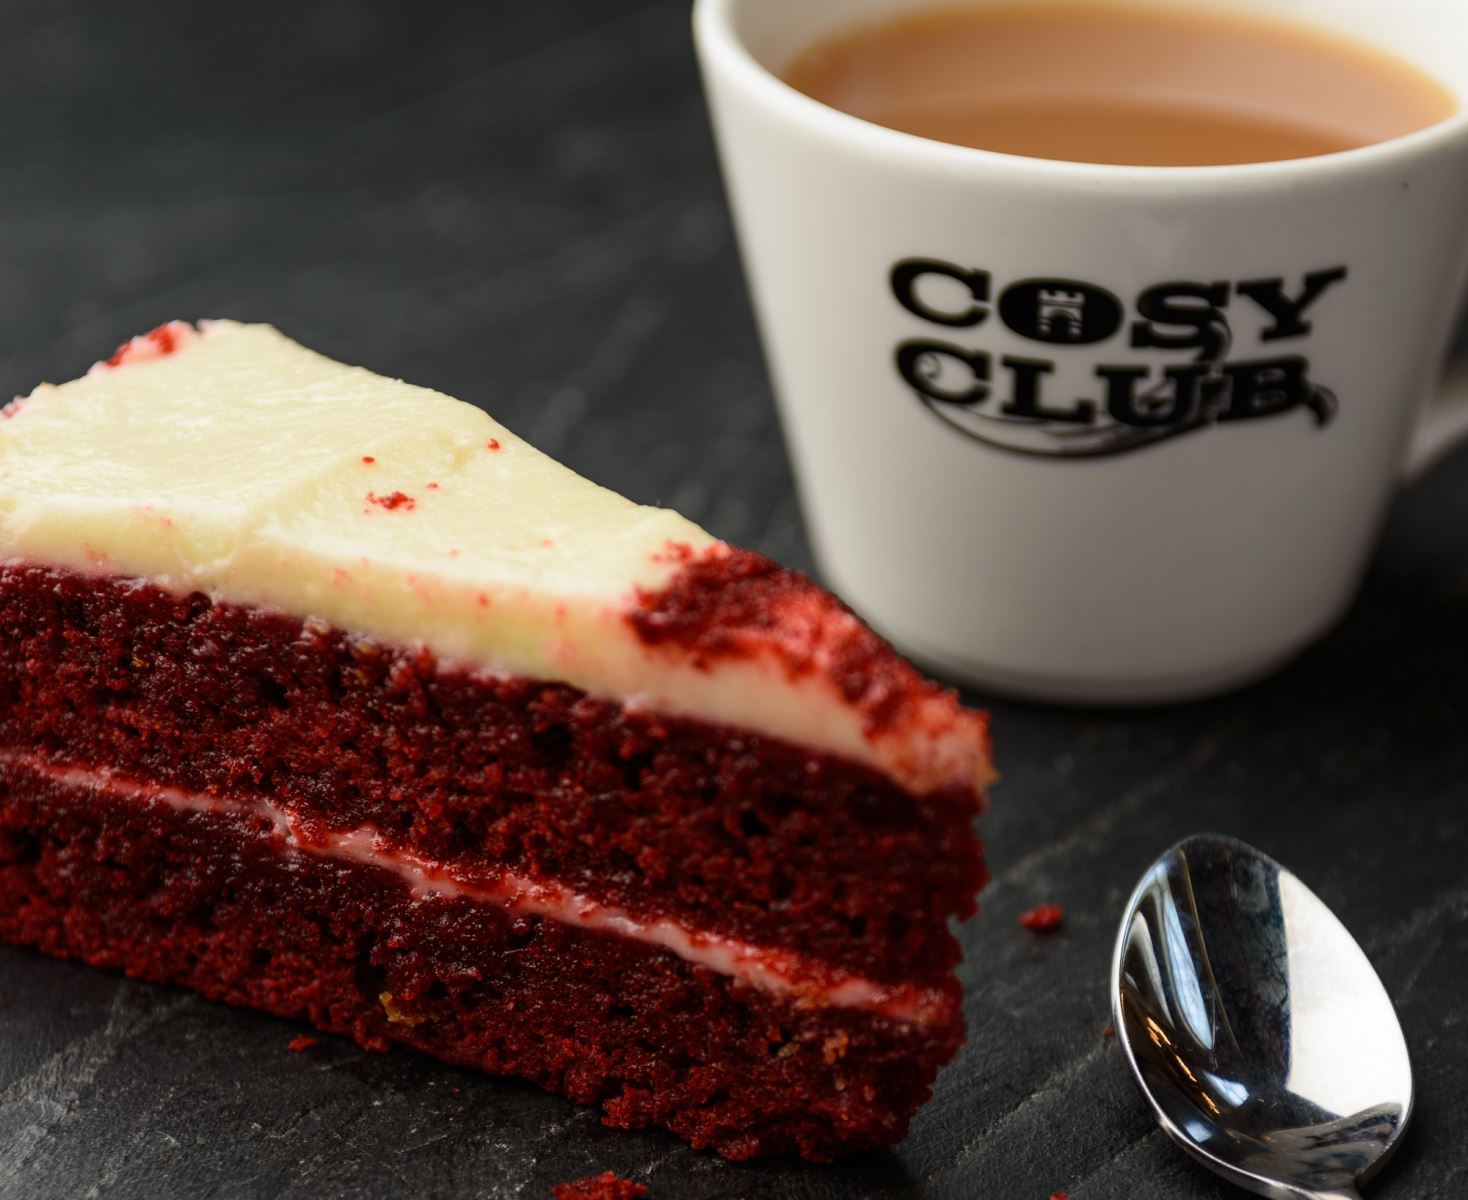 Cake at The Cosy Club